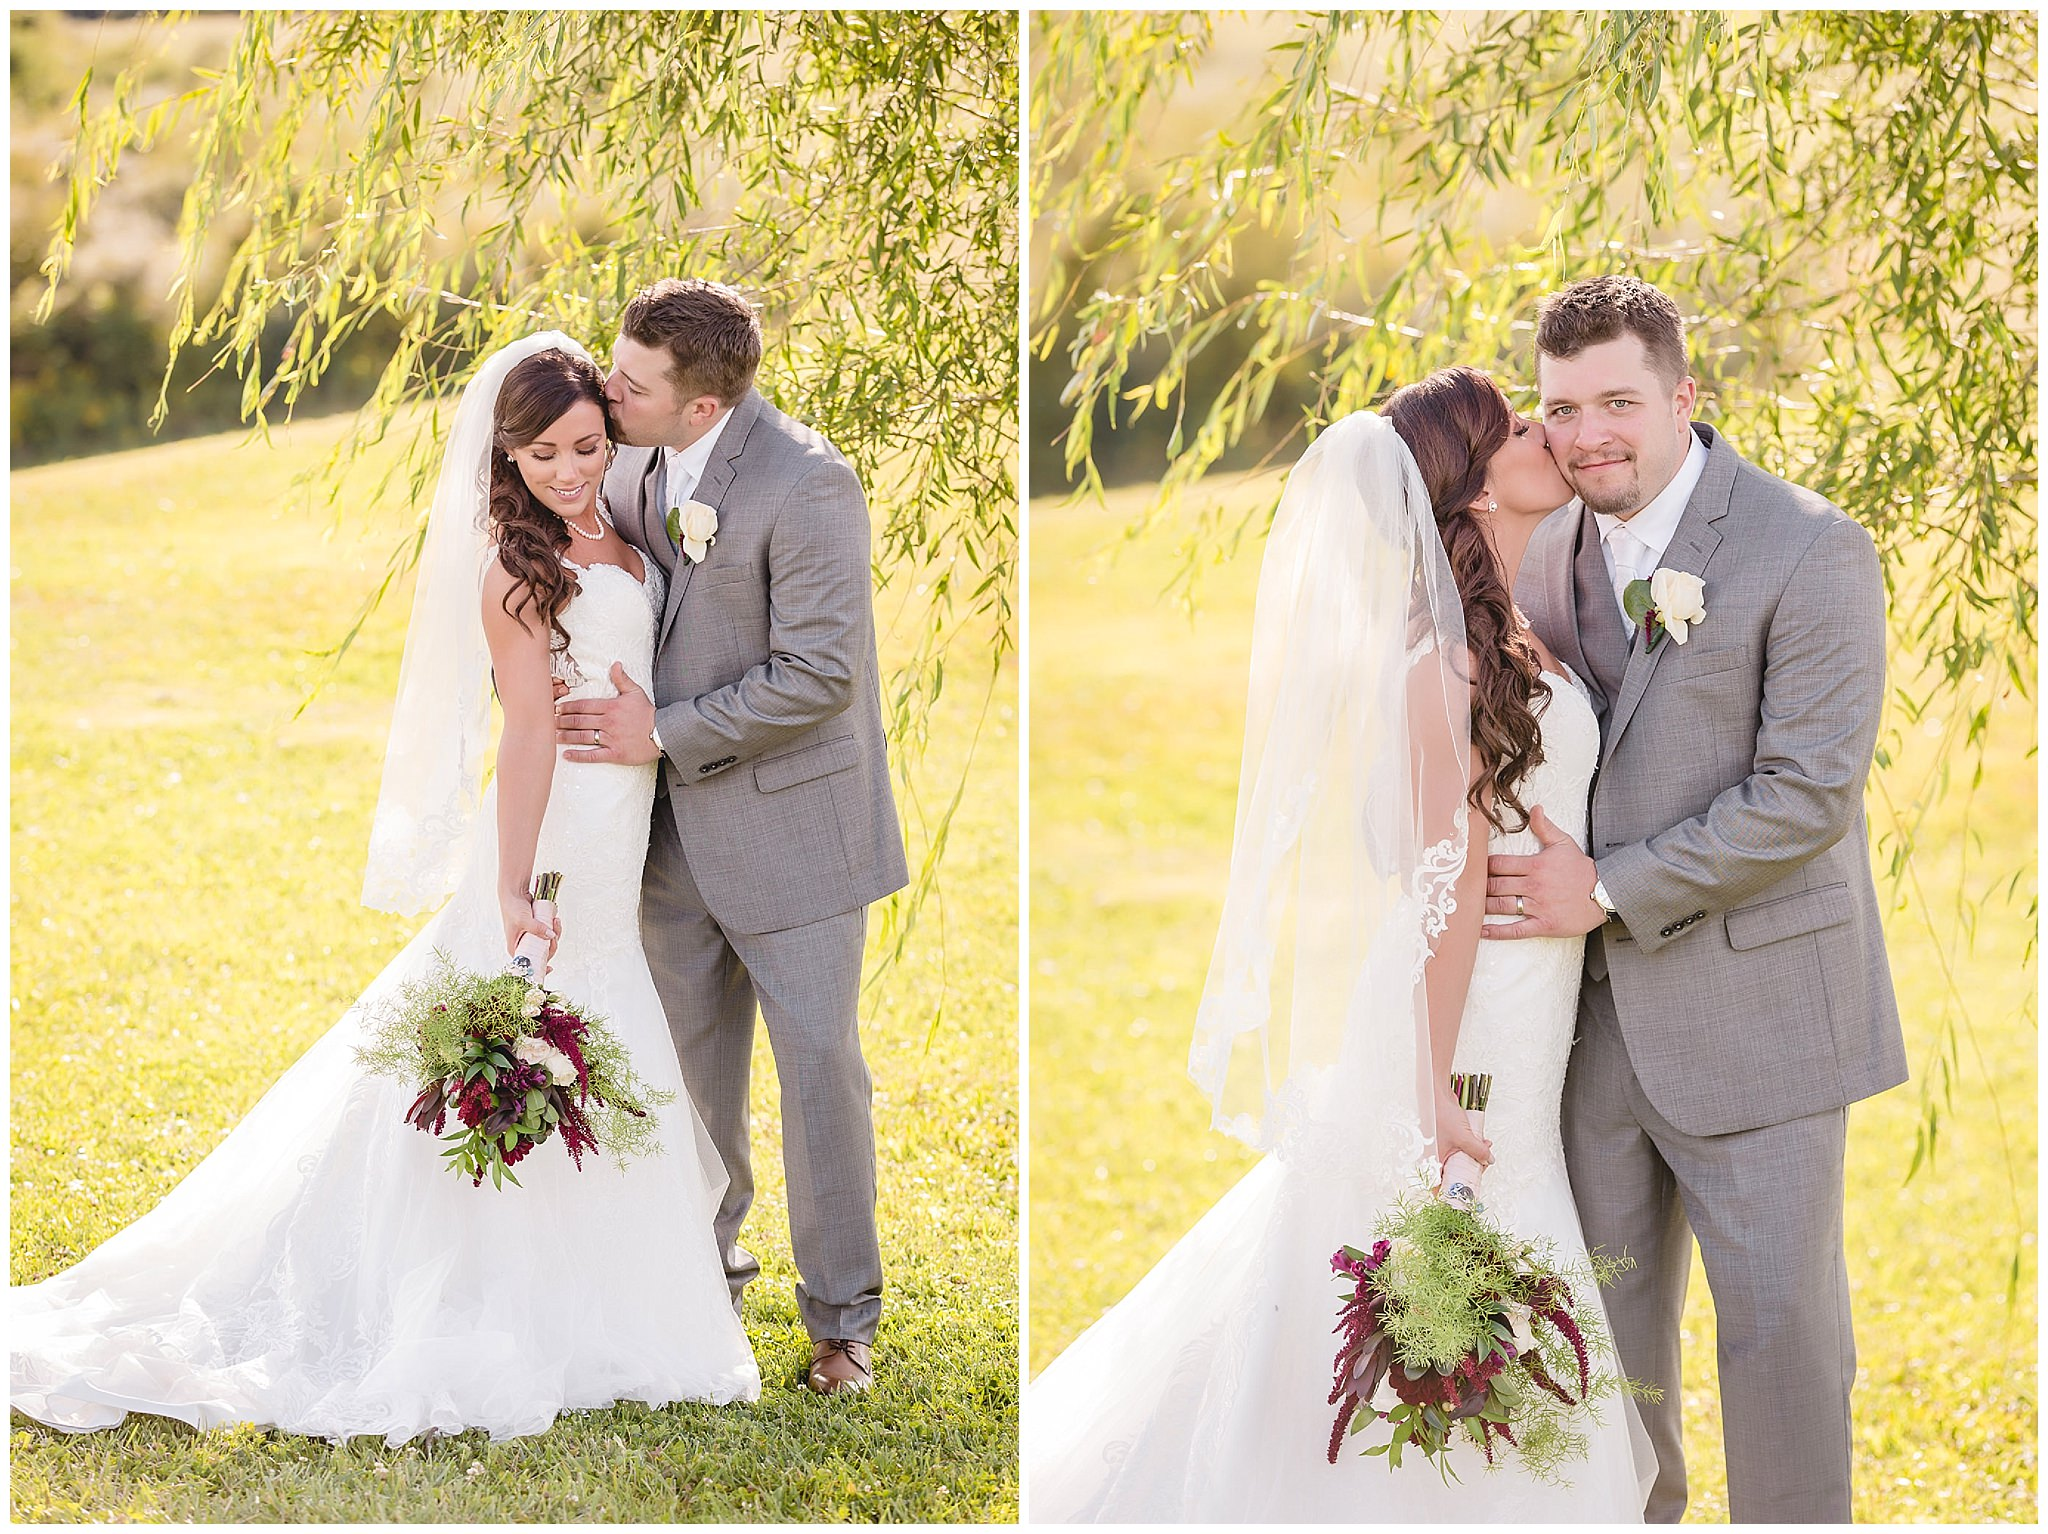 Bride and groom pose for portraits under a tree at the White Barn